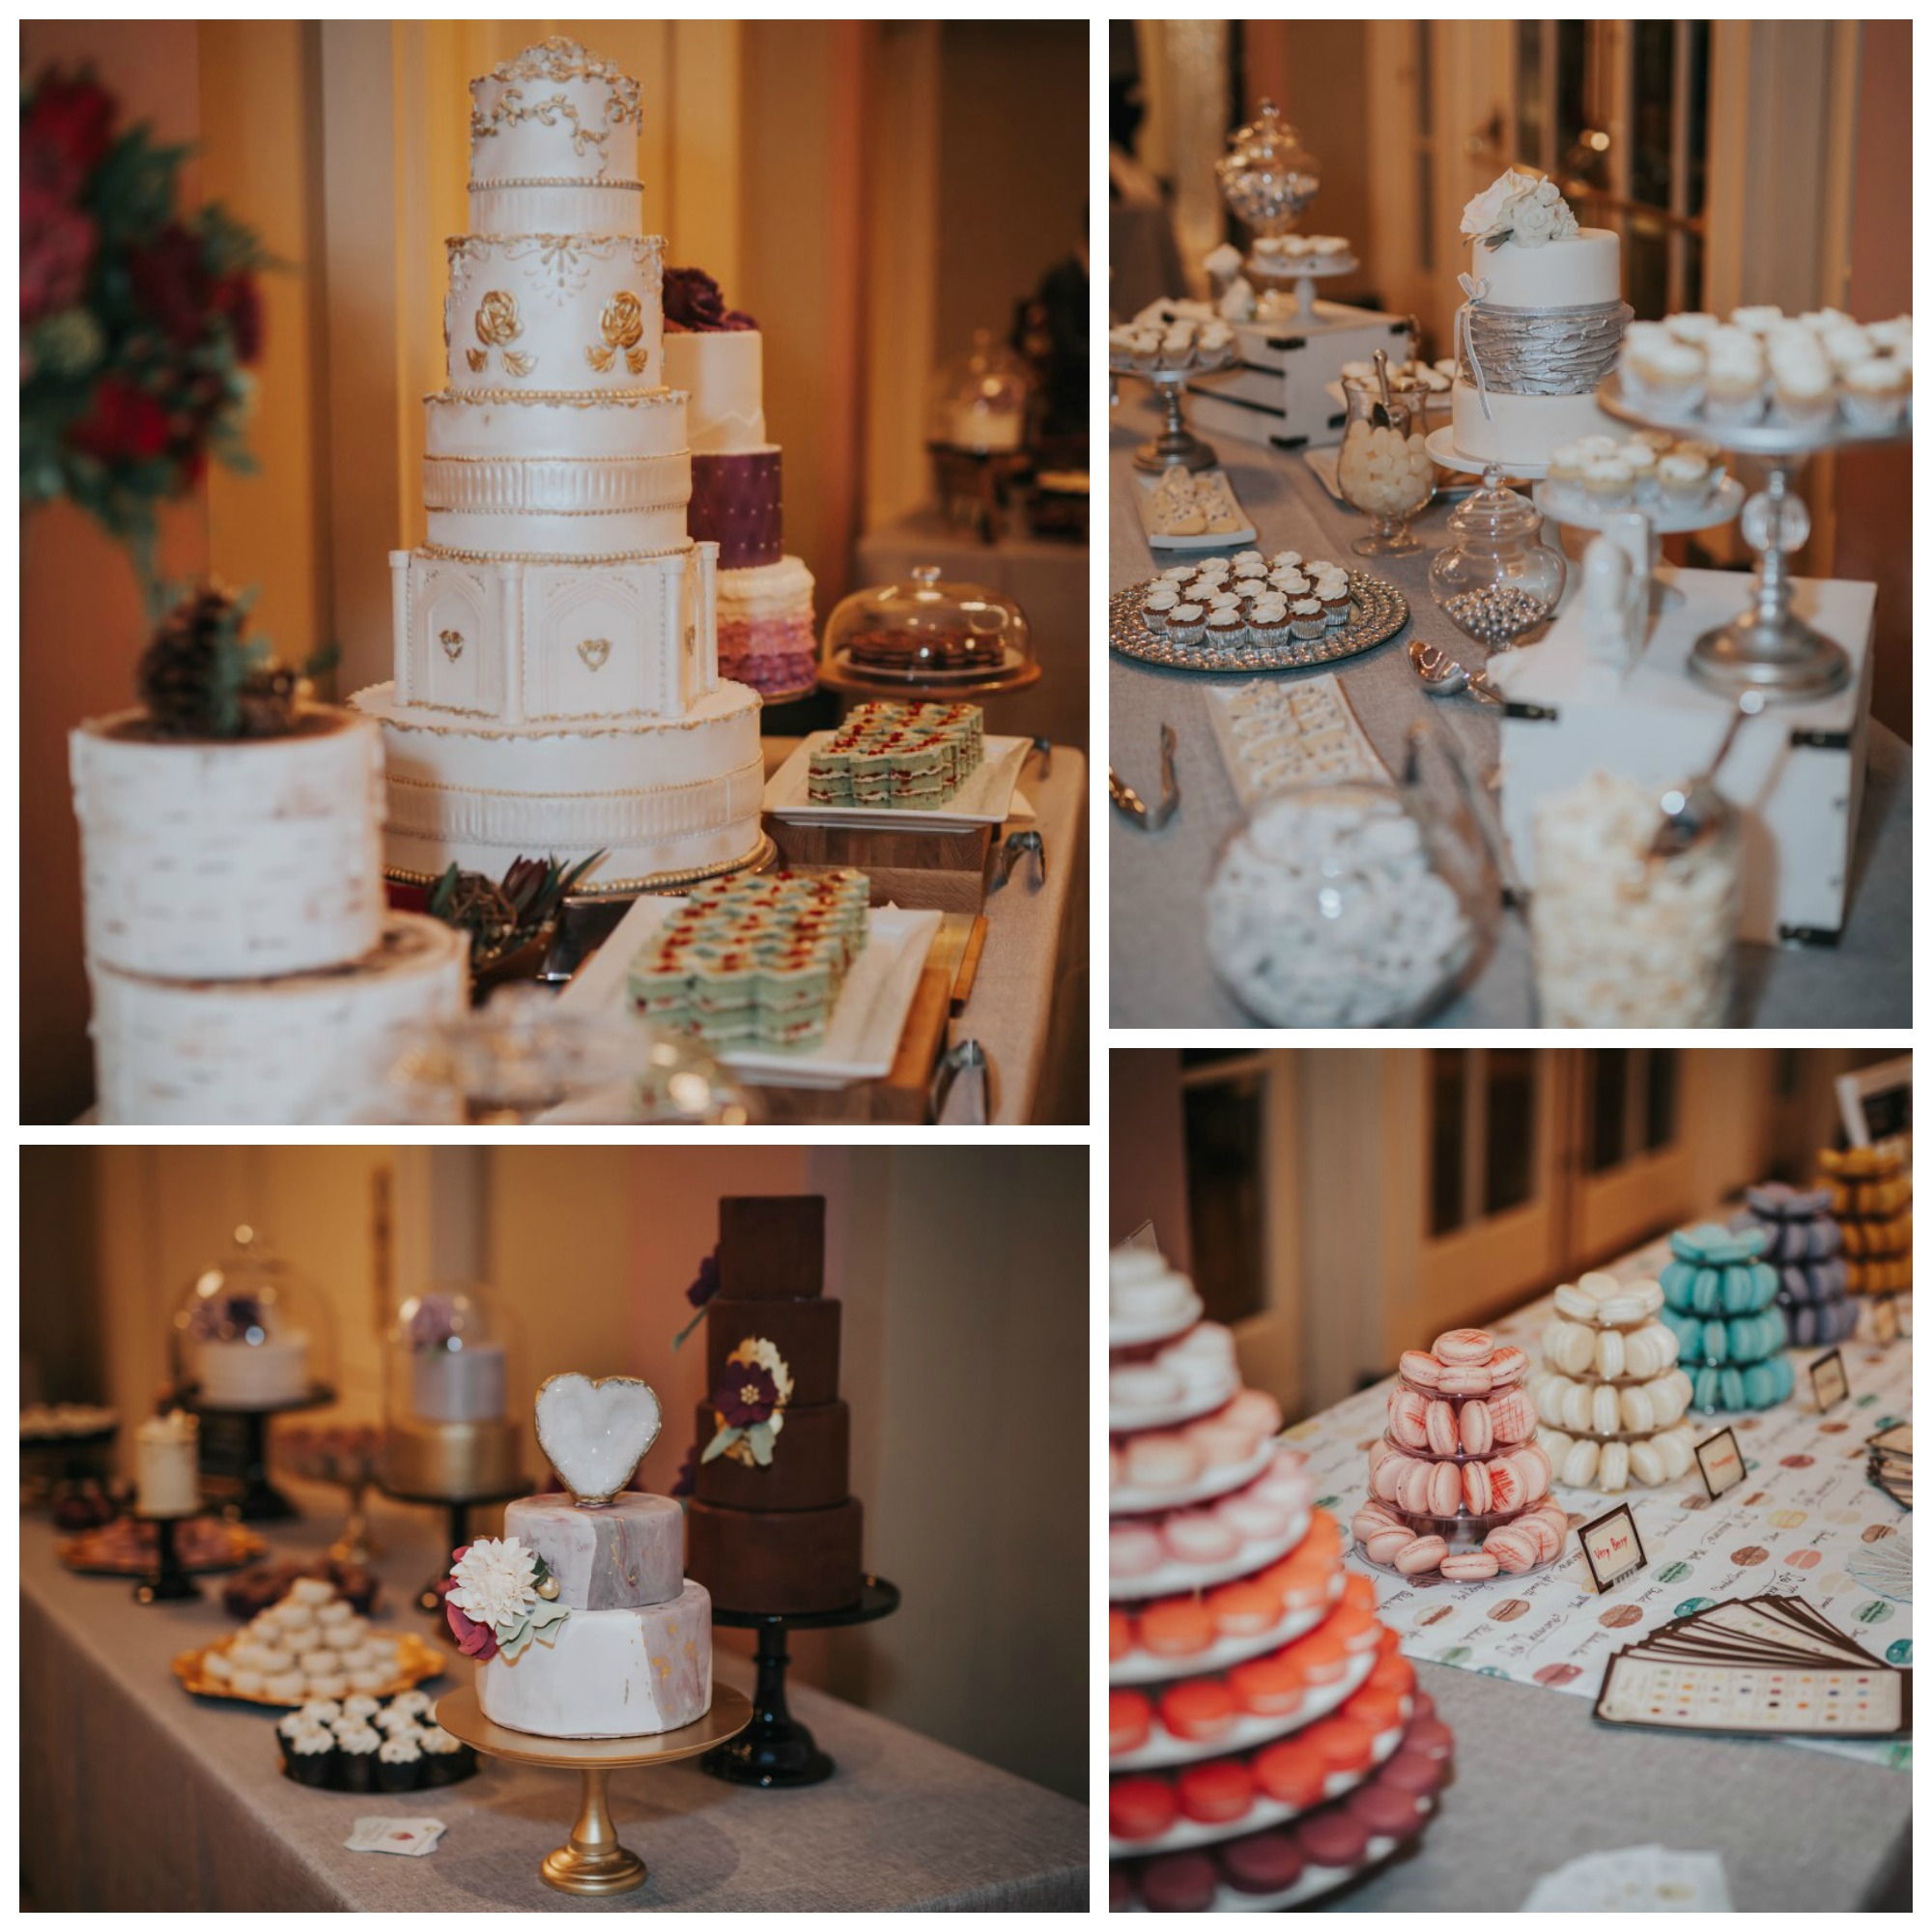 Cake and Desserts at Vancouver Island Wedding Awards Fairmont Empress